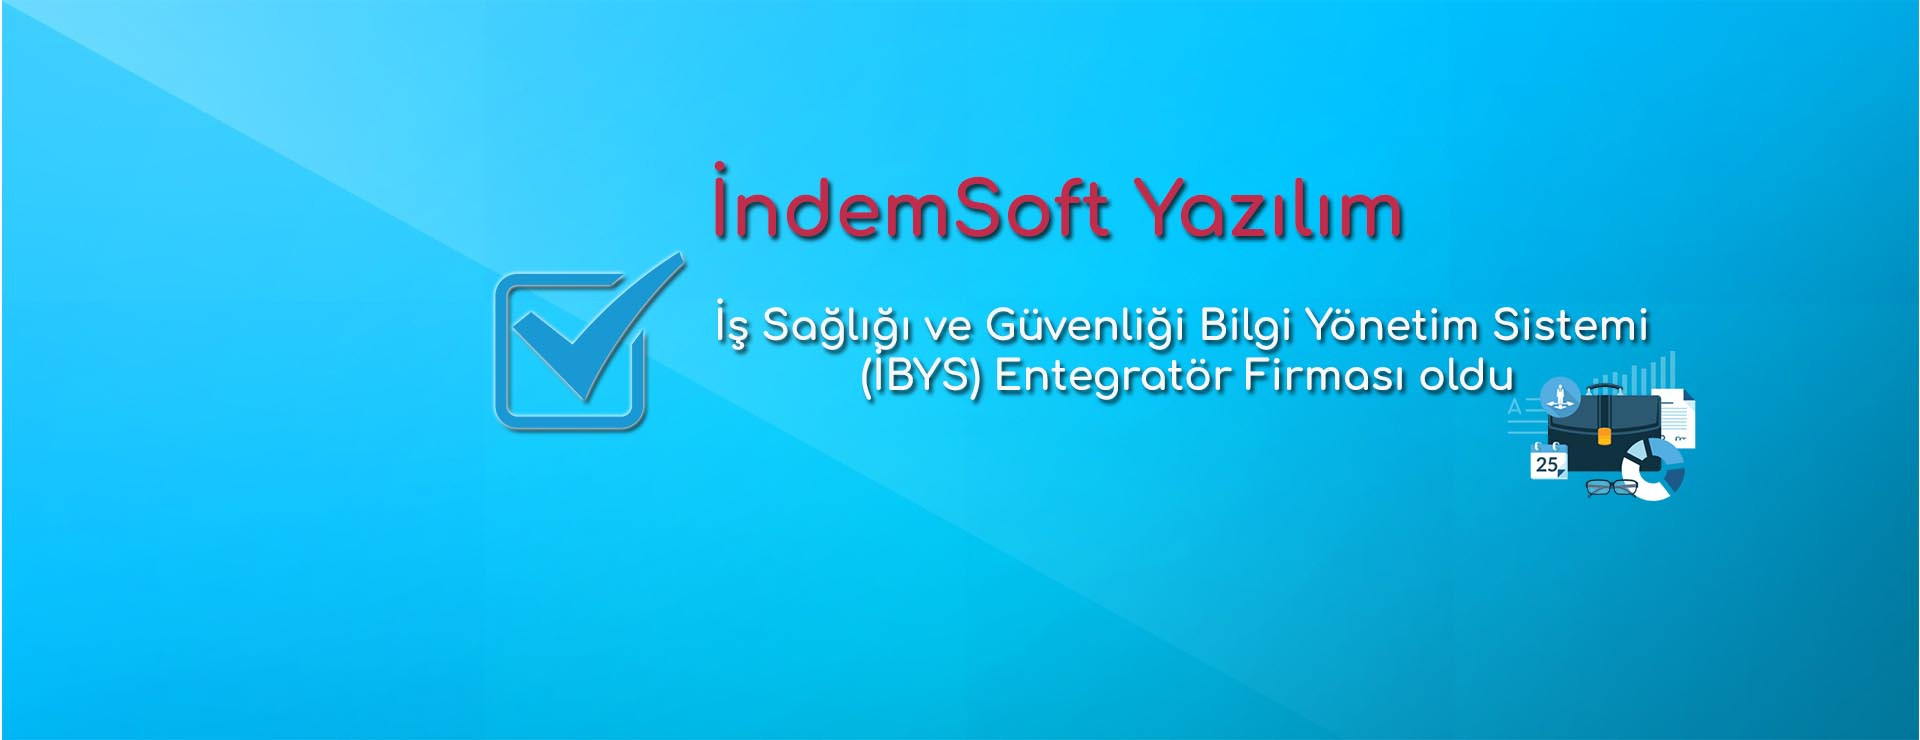 indemsoft